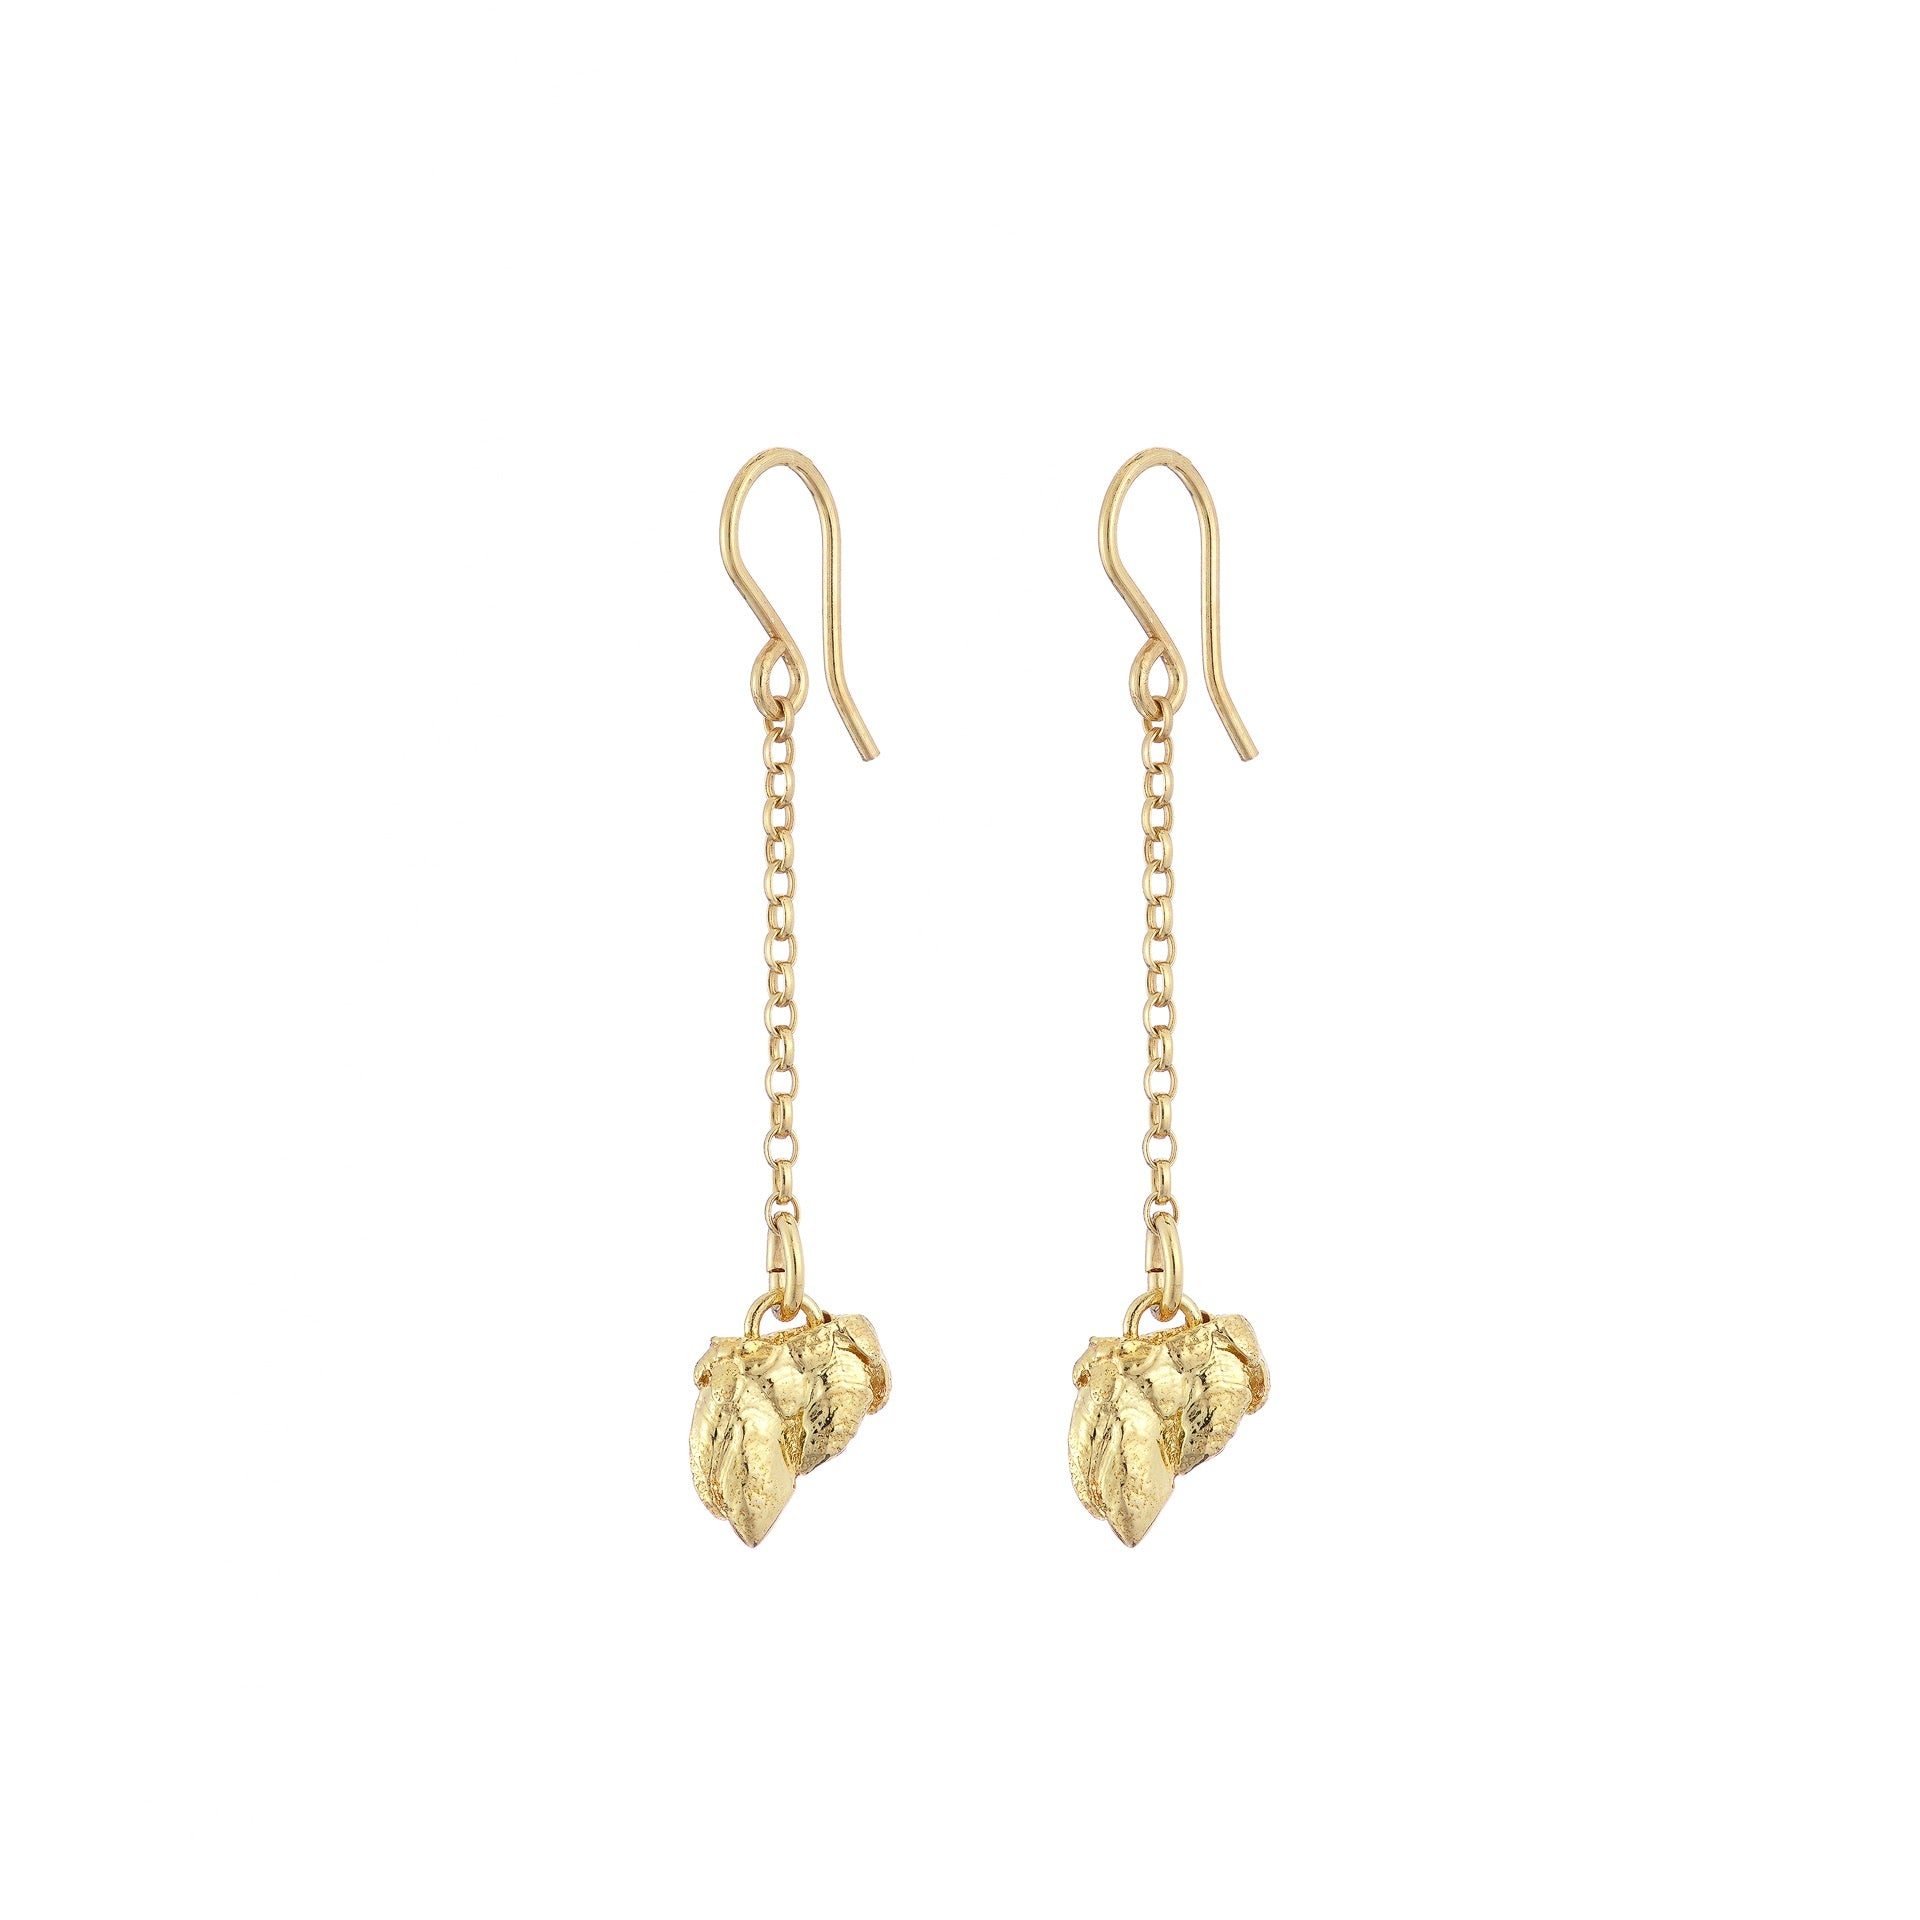 Percebes Shell Earring Small - Gold Plated